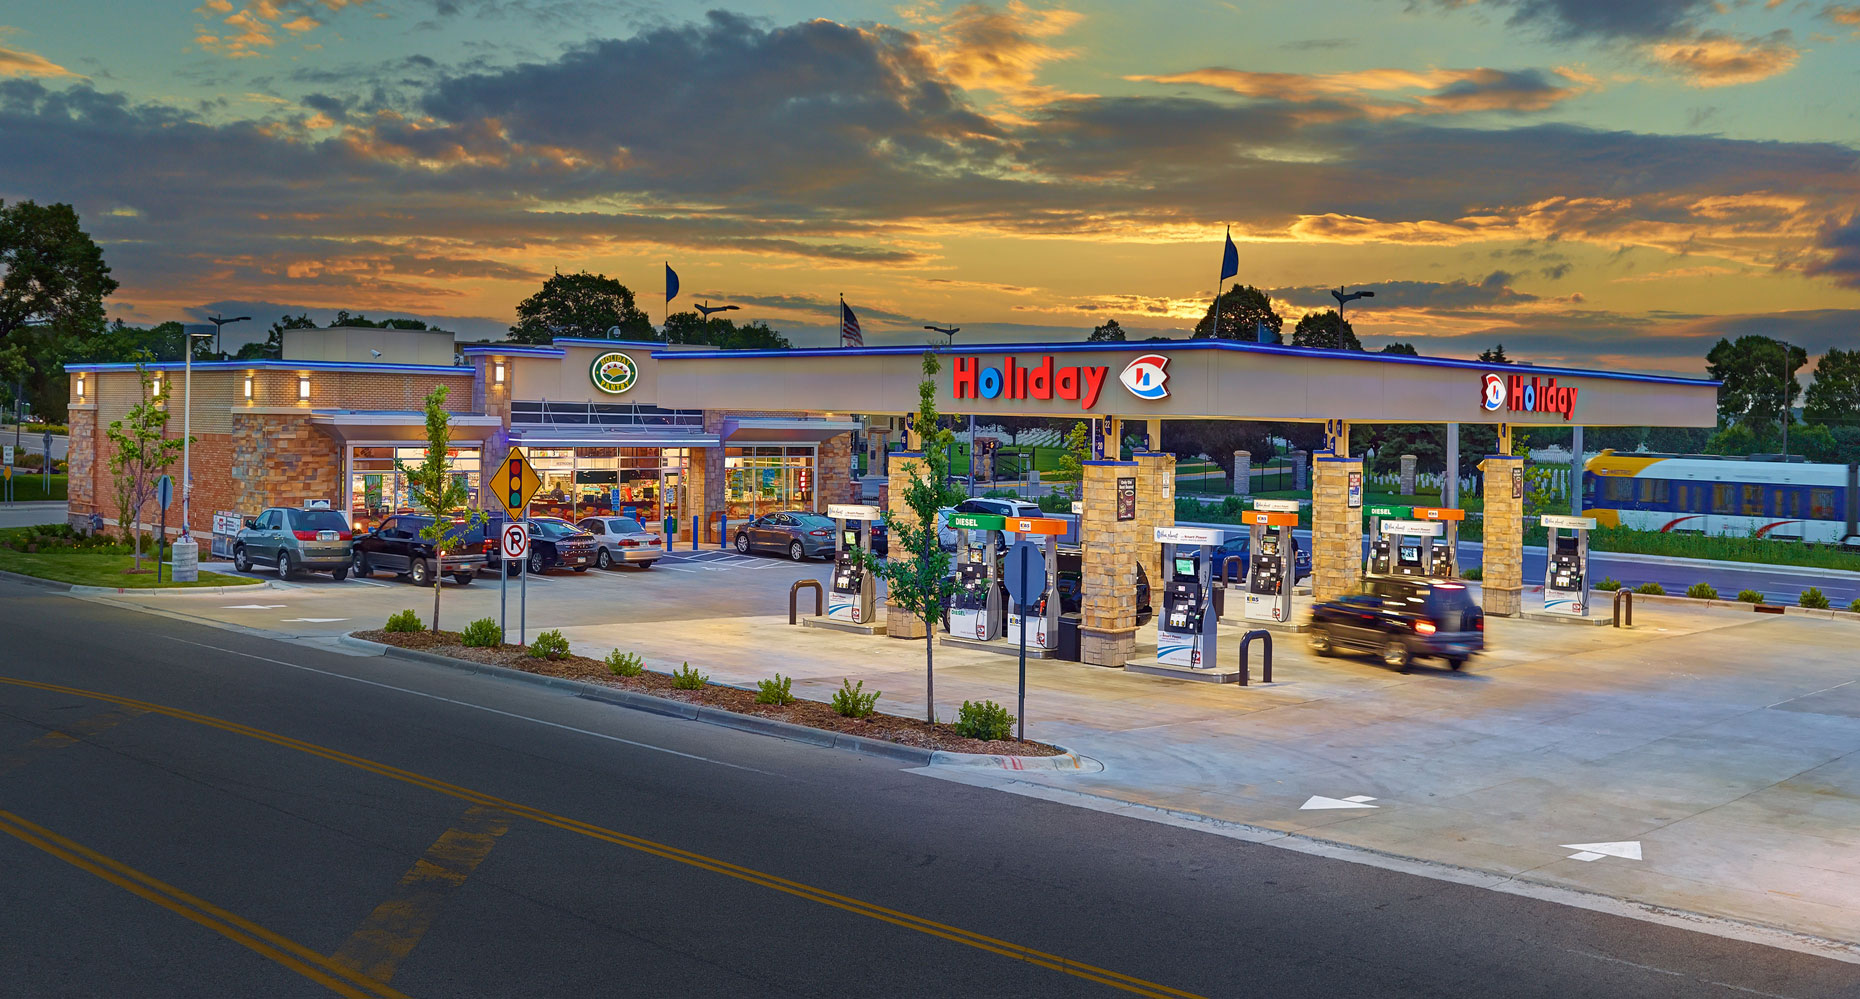 Holiday gas station/pumps/store in background/architectural photo